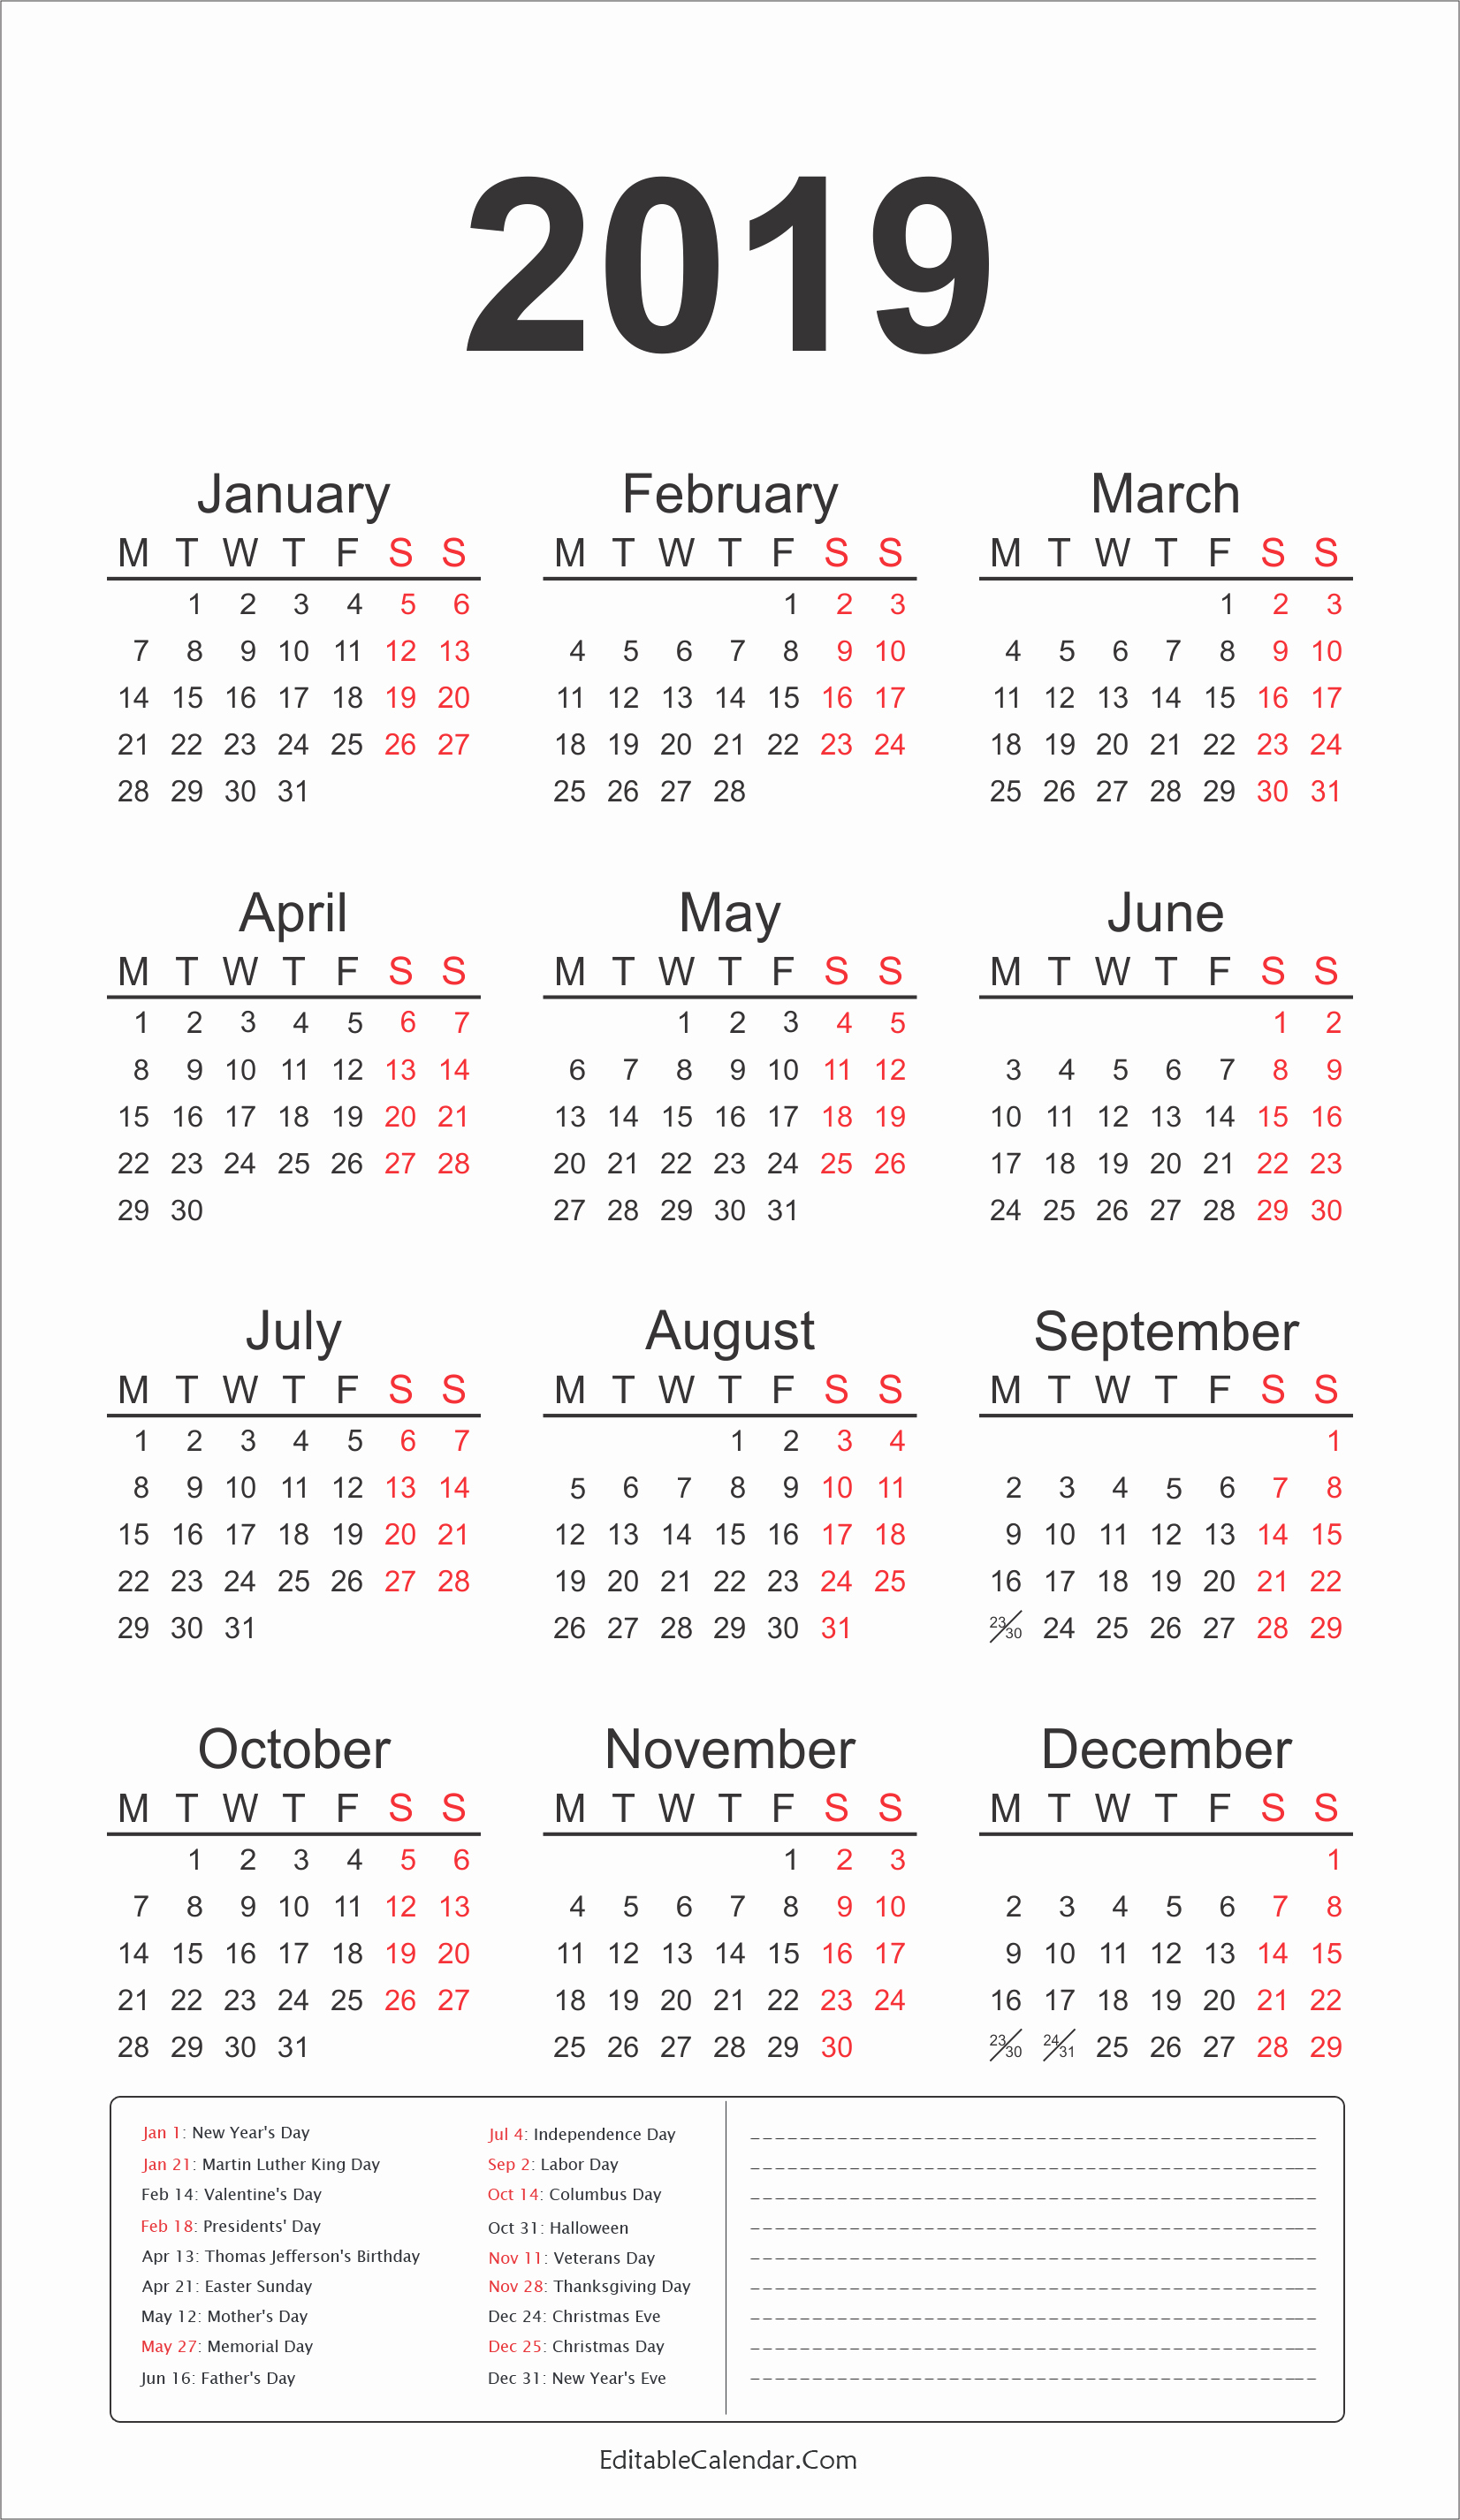 Federal Holidays Printable Calendars 2019 2019 Calendar Template Calendar 2019 Federal Holidays